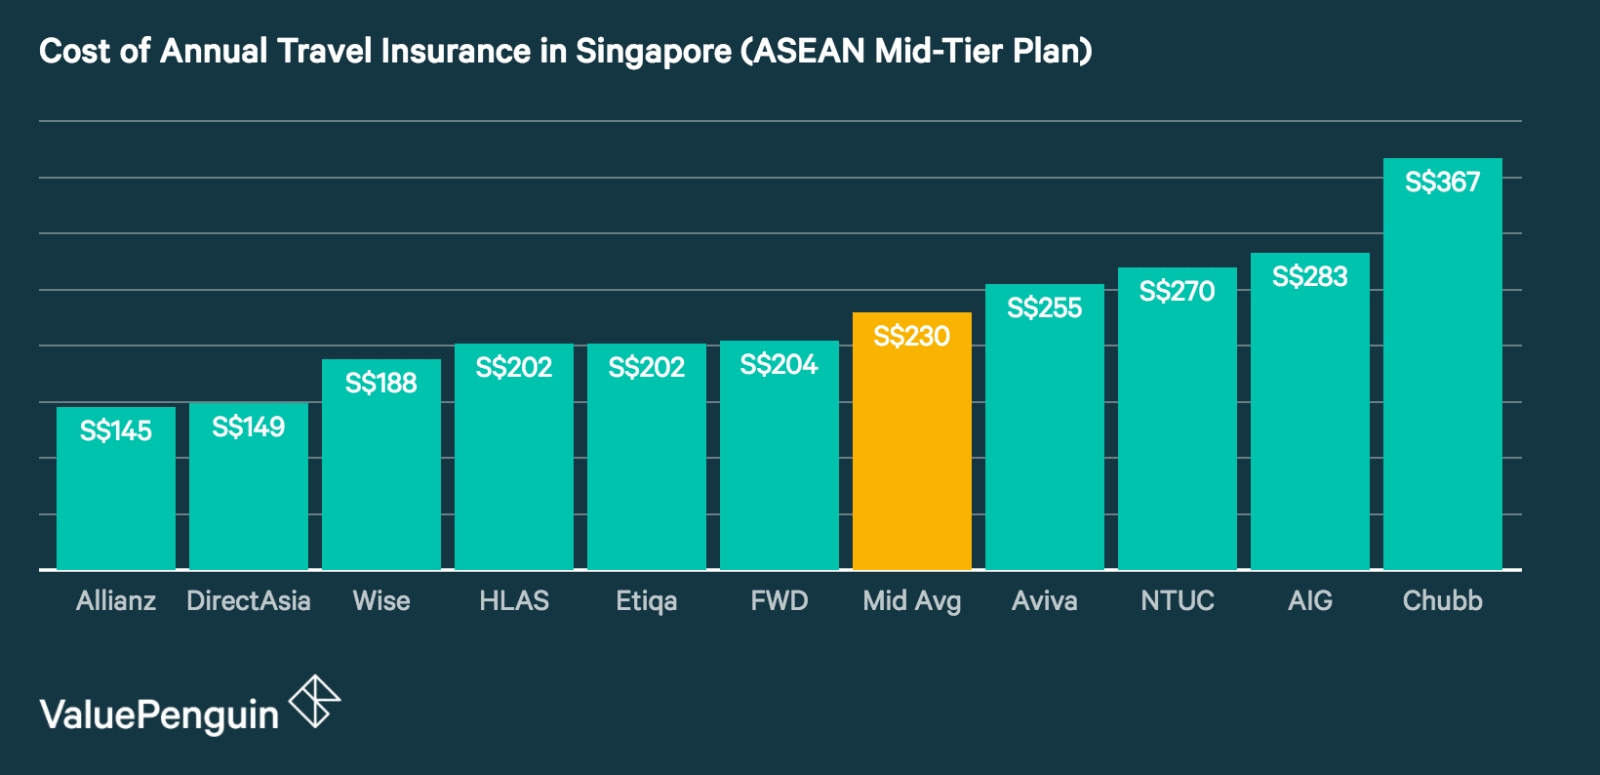 This graph shows the best annual travel insurance plans in Singapore